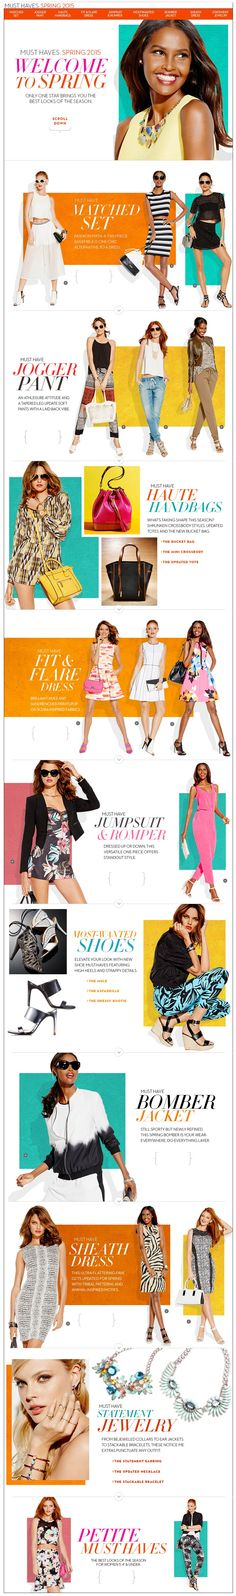 Macy's – Welcome to Spring